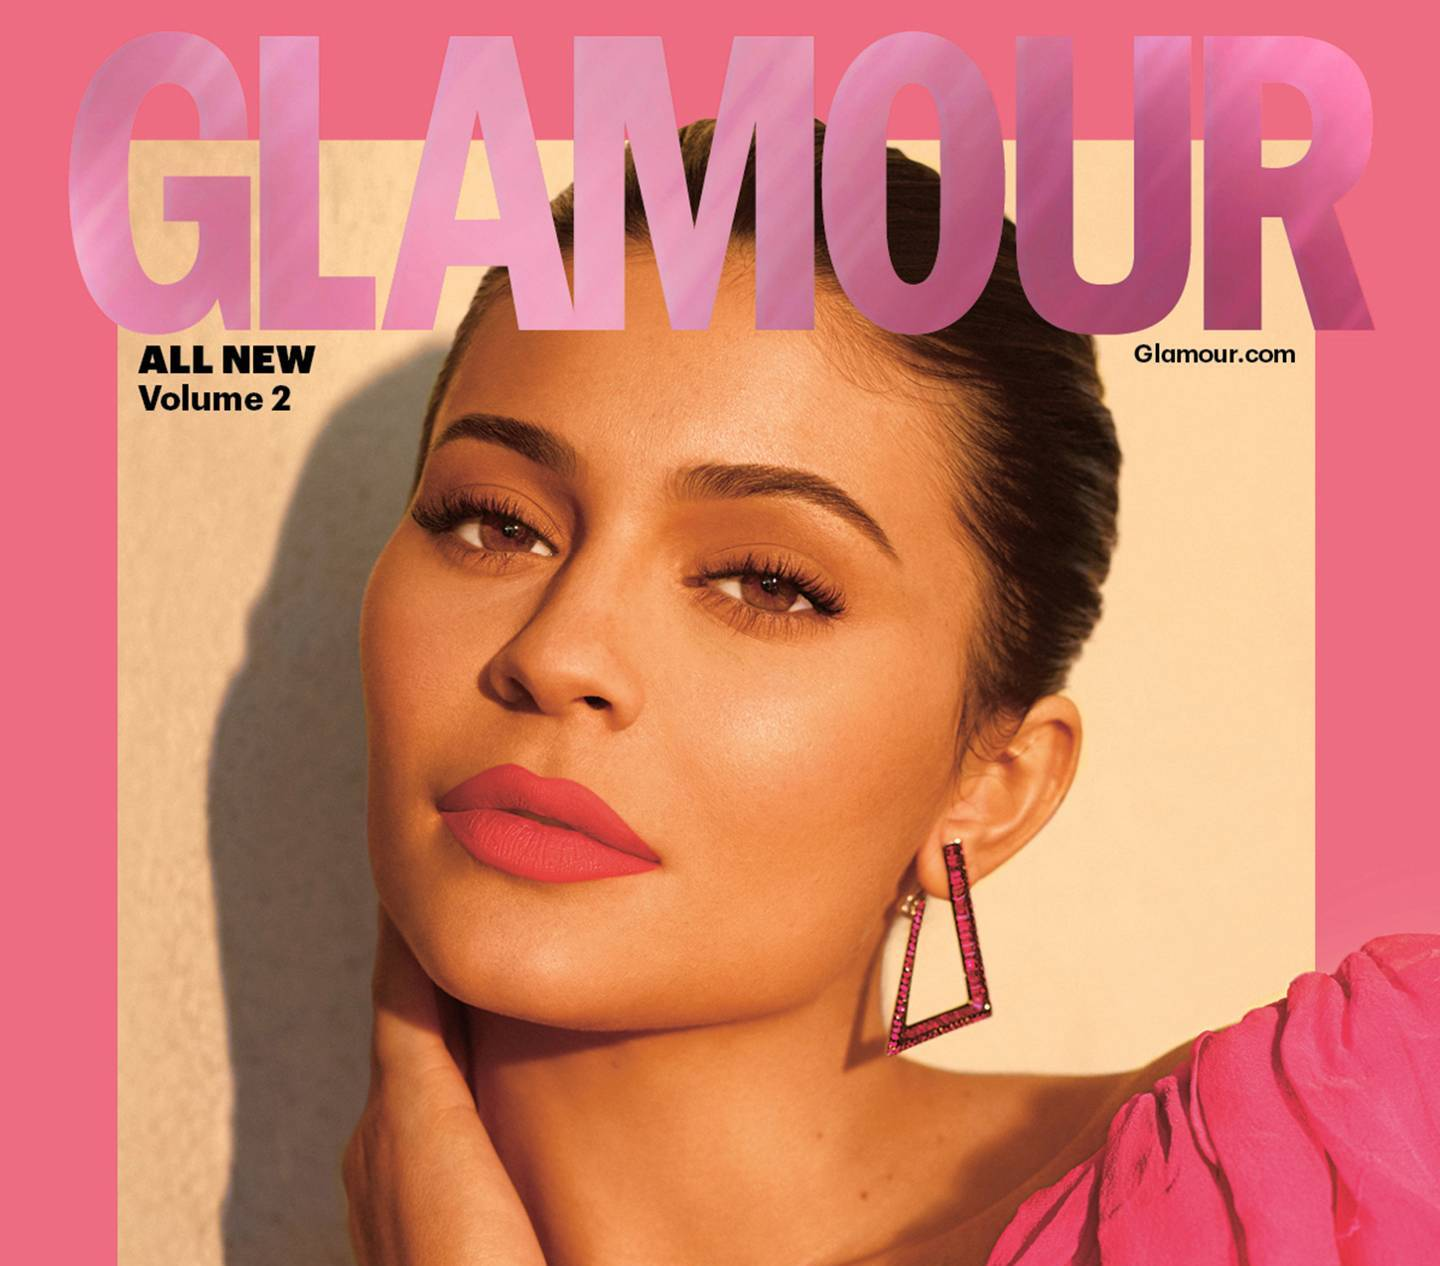 Kylie Jenner is all shades of beautiful for Glamour magazine